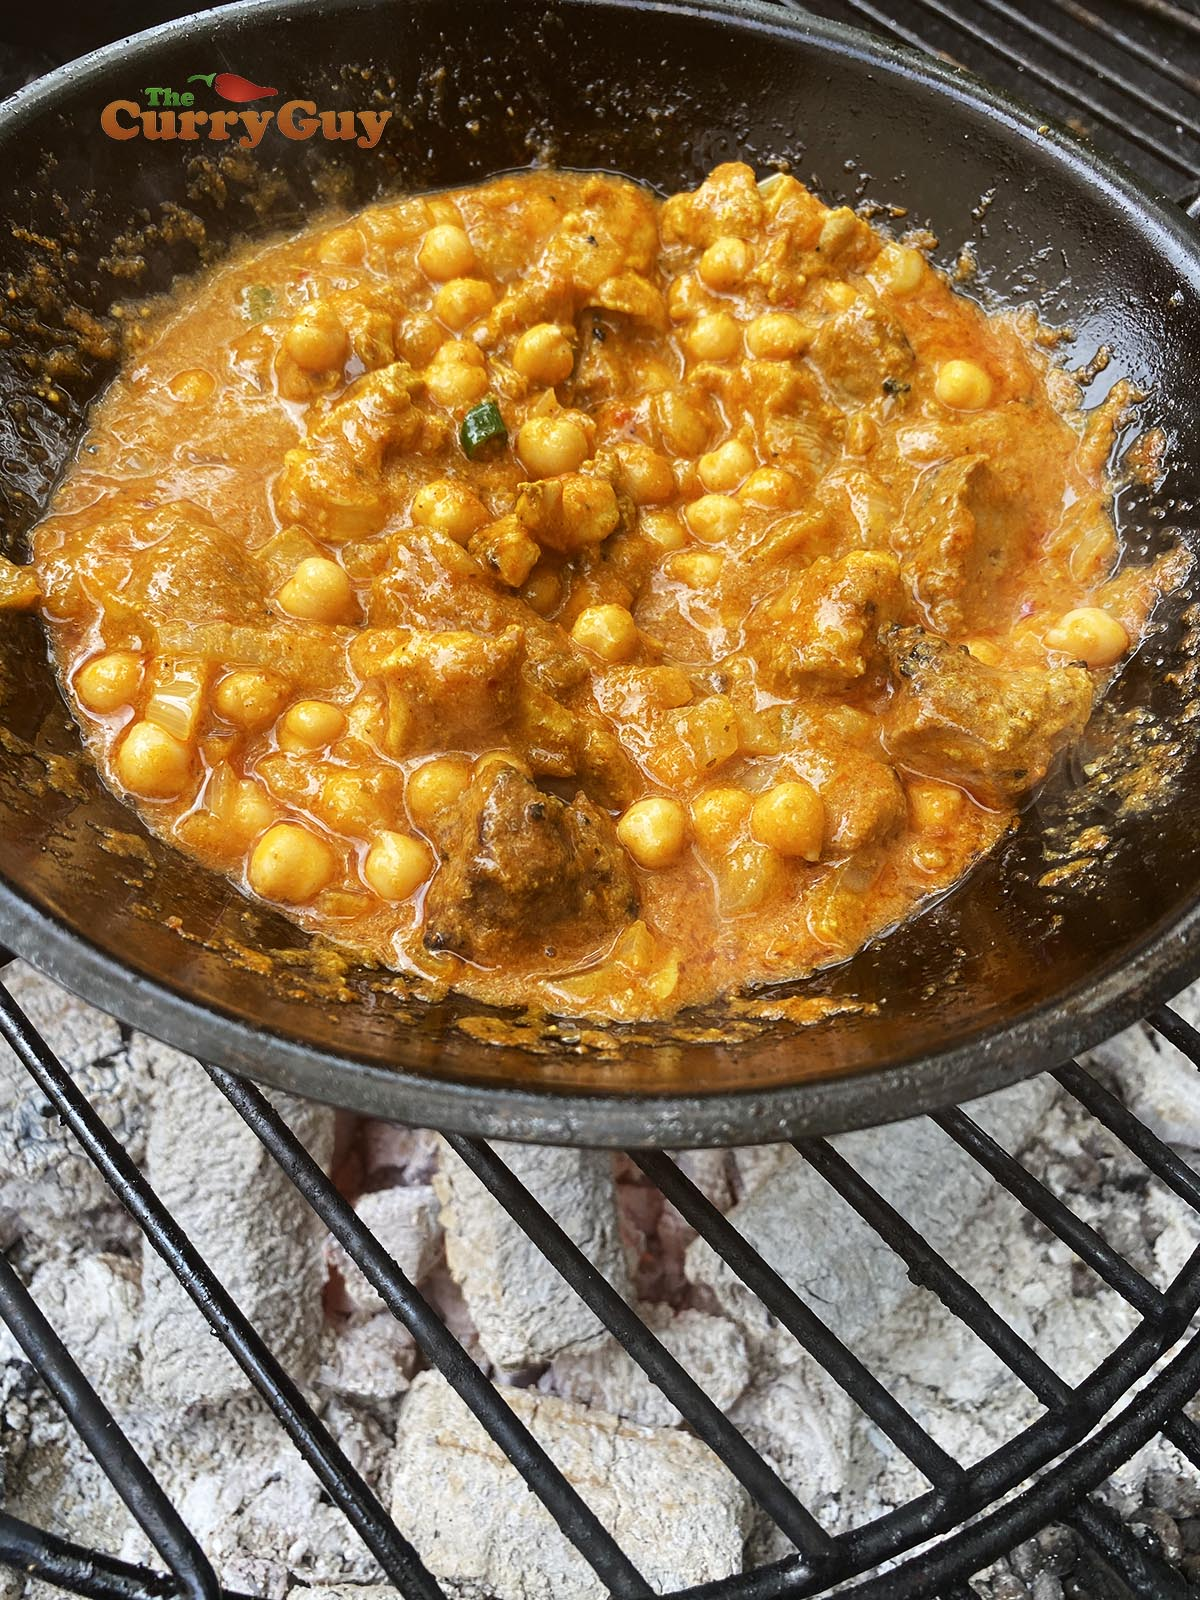 Adding chickpeas to the pan